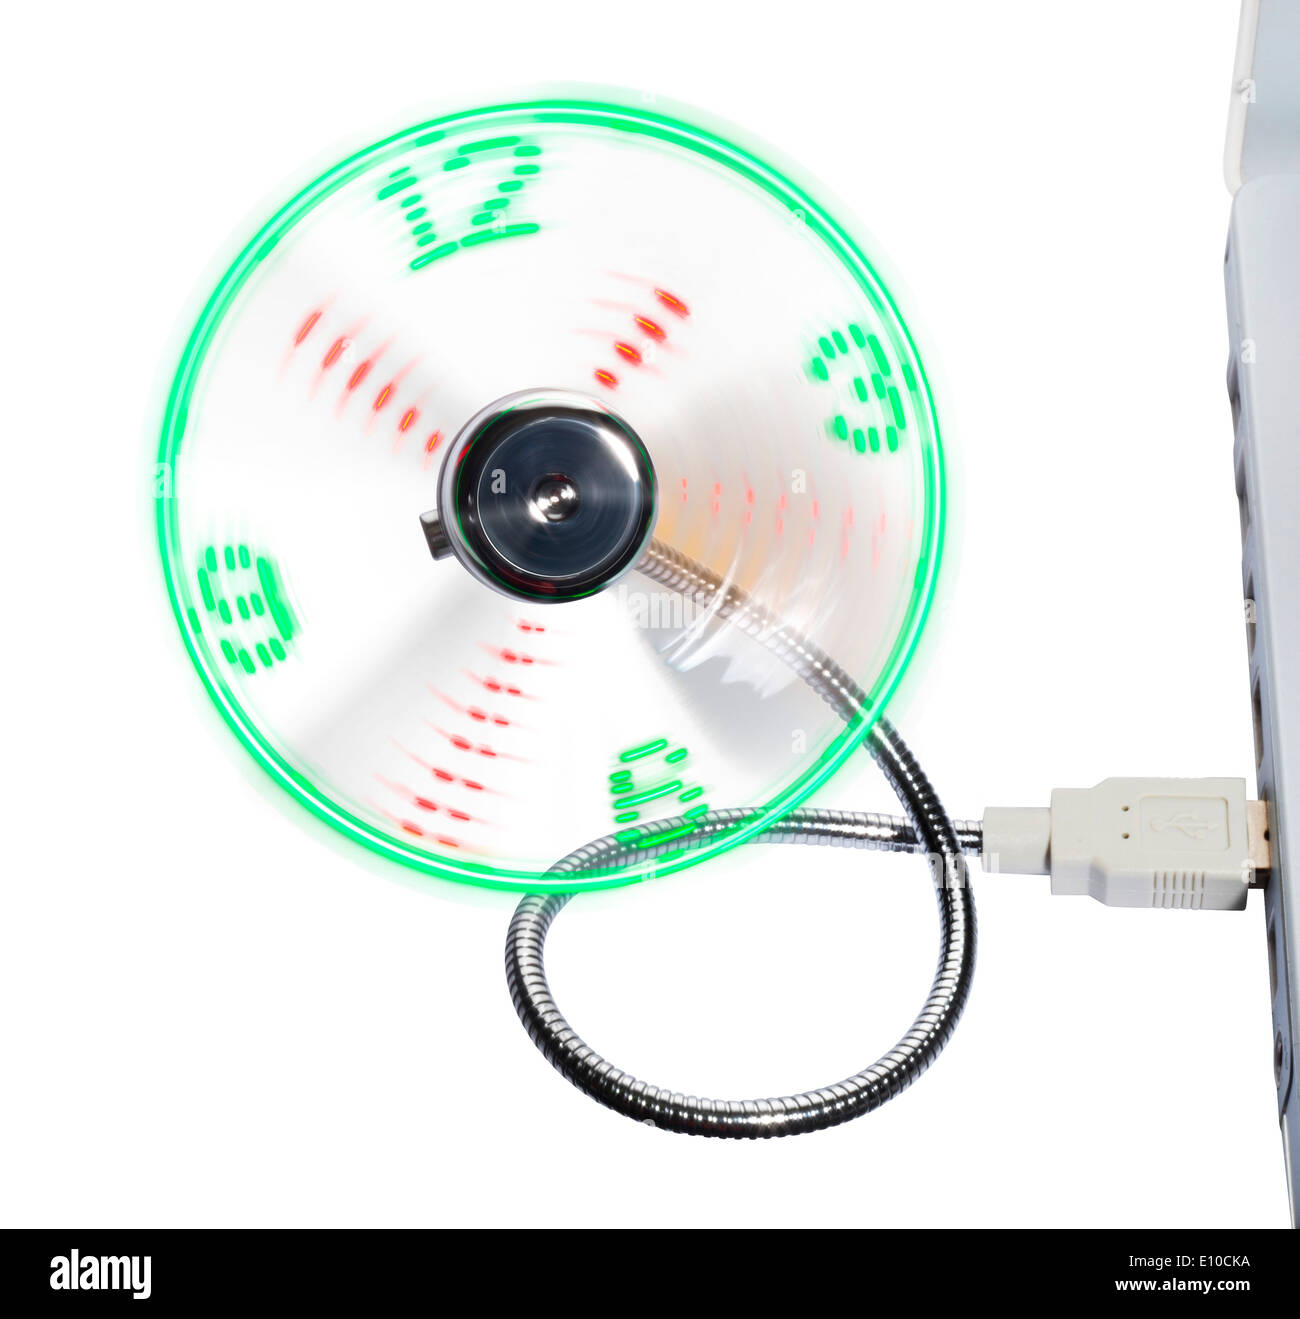 Rotating USB fan that displays the time - Stock Image